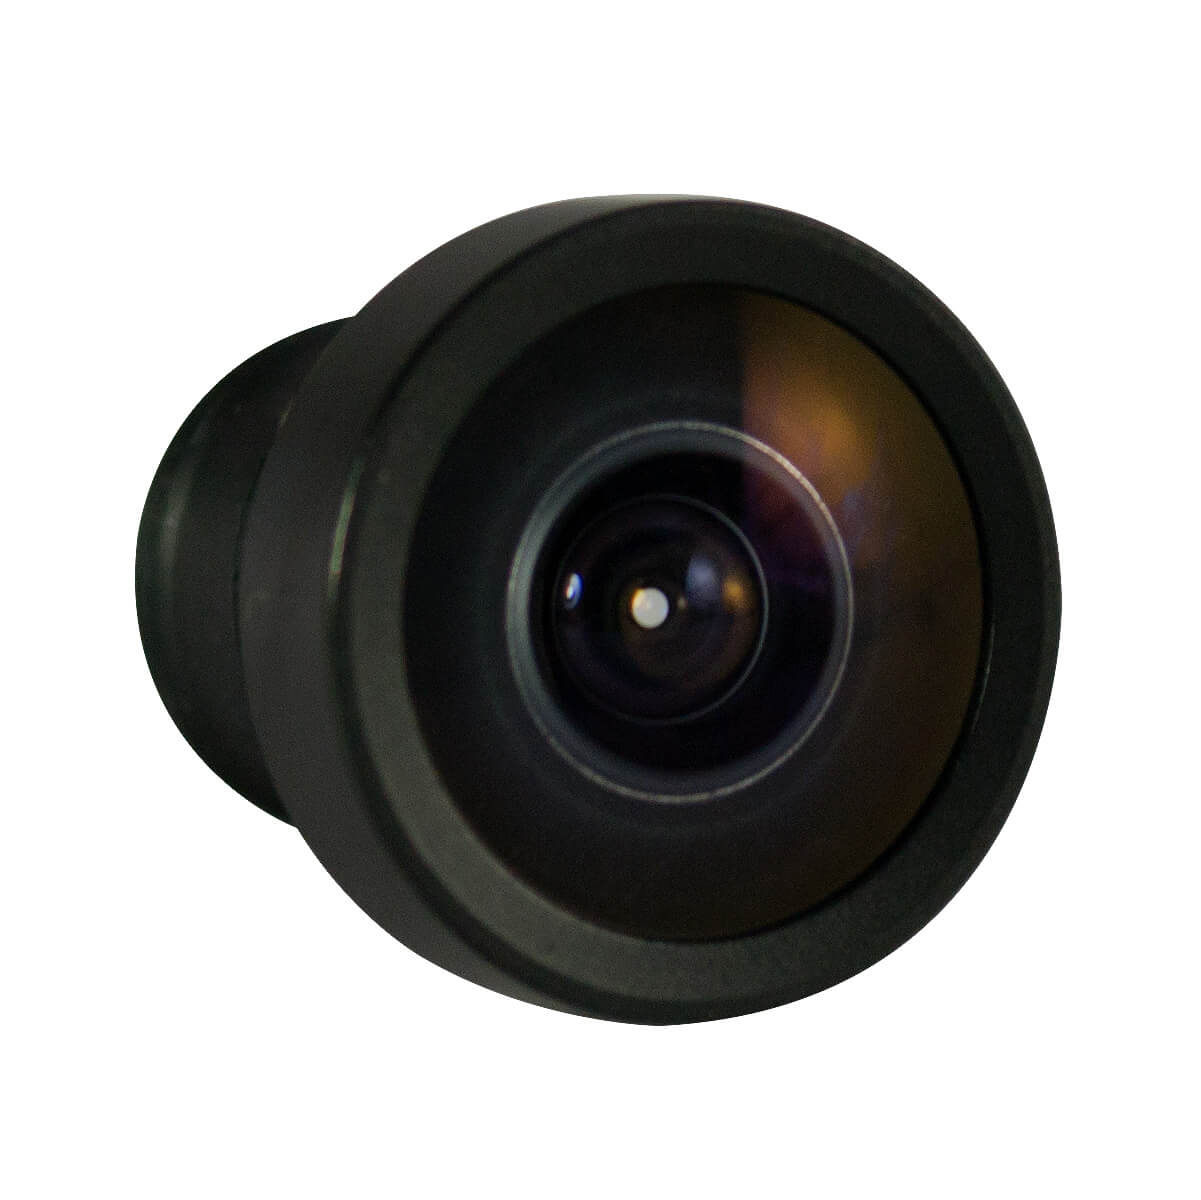 2.5mm Board Lens ideal for infrared cameras